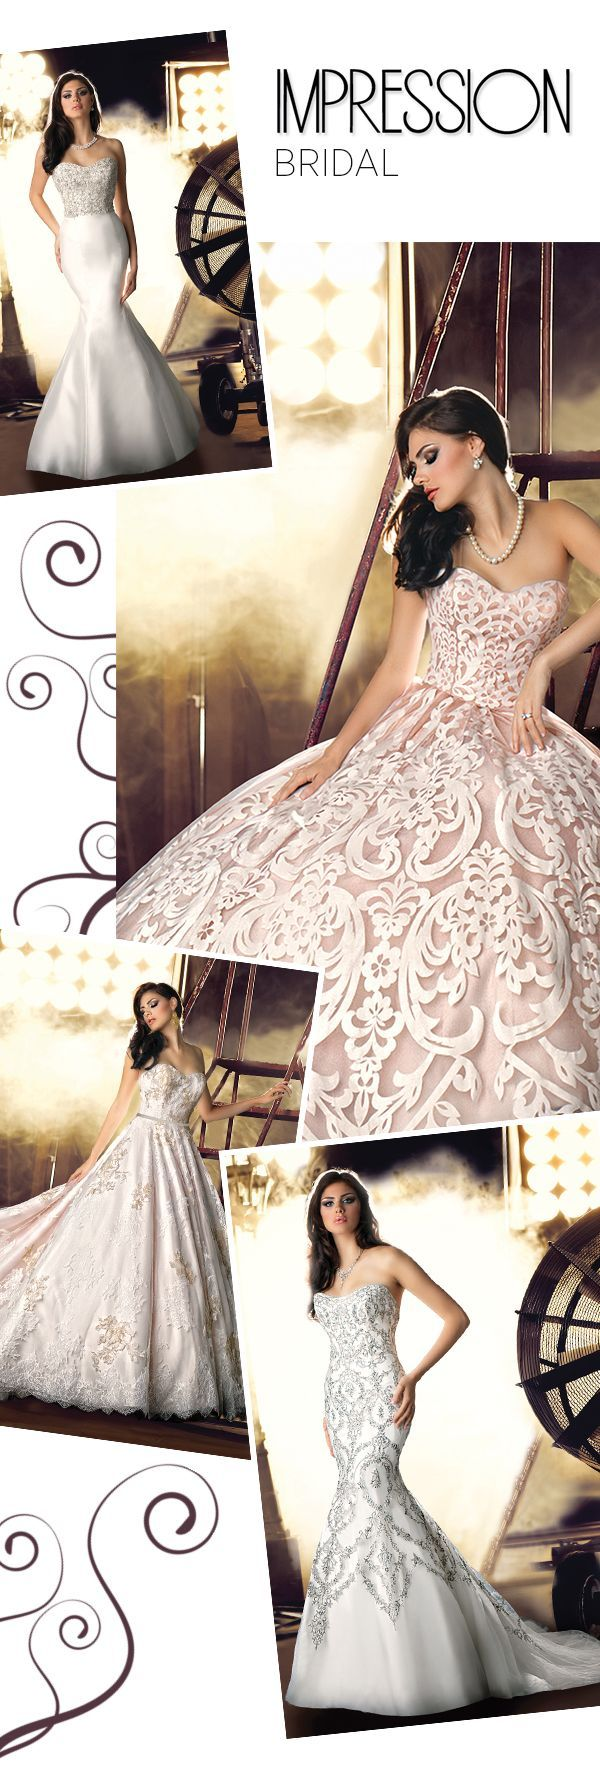 Find your Dream Dress with Impression Bridal